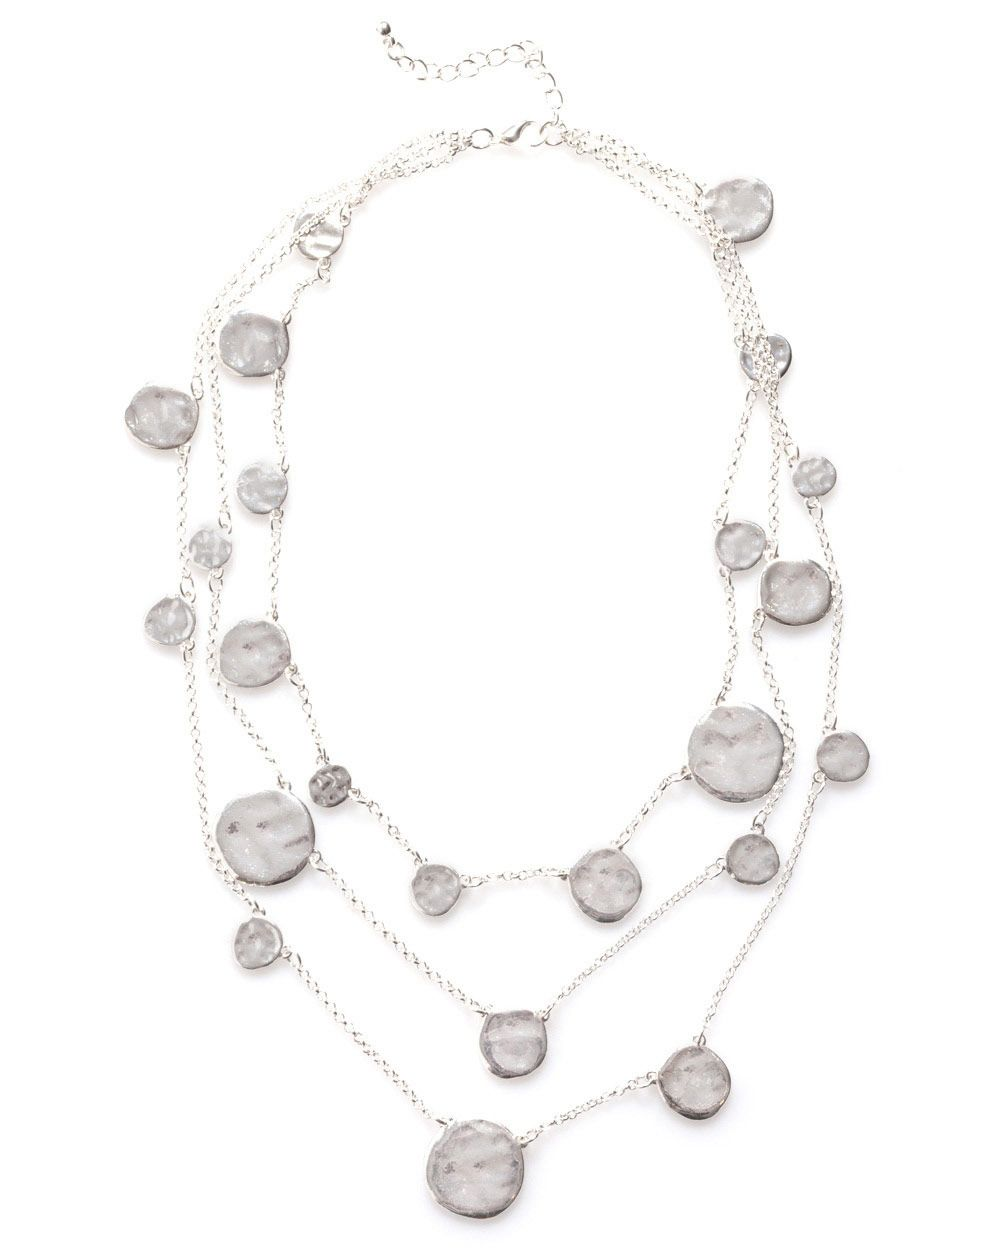 Irregular disc necklace